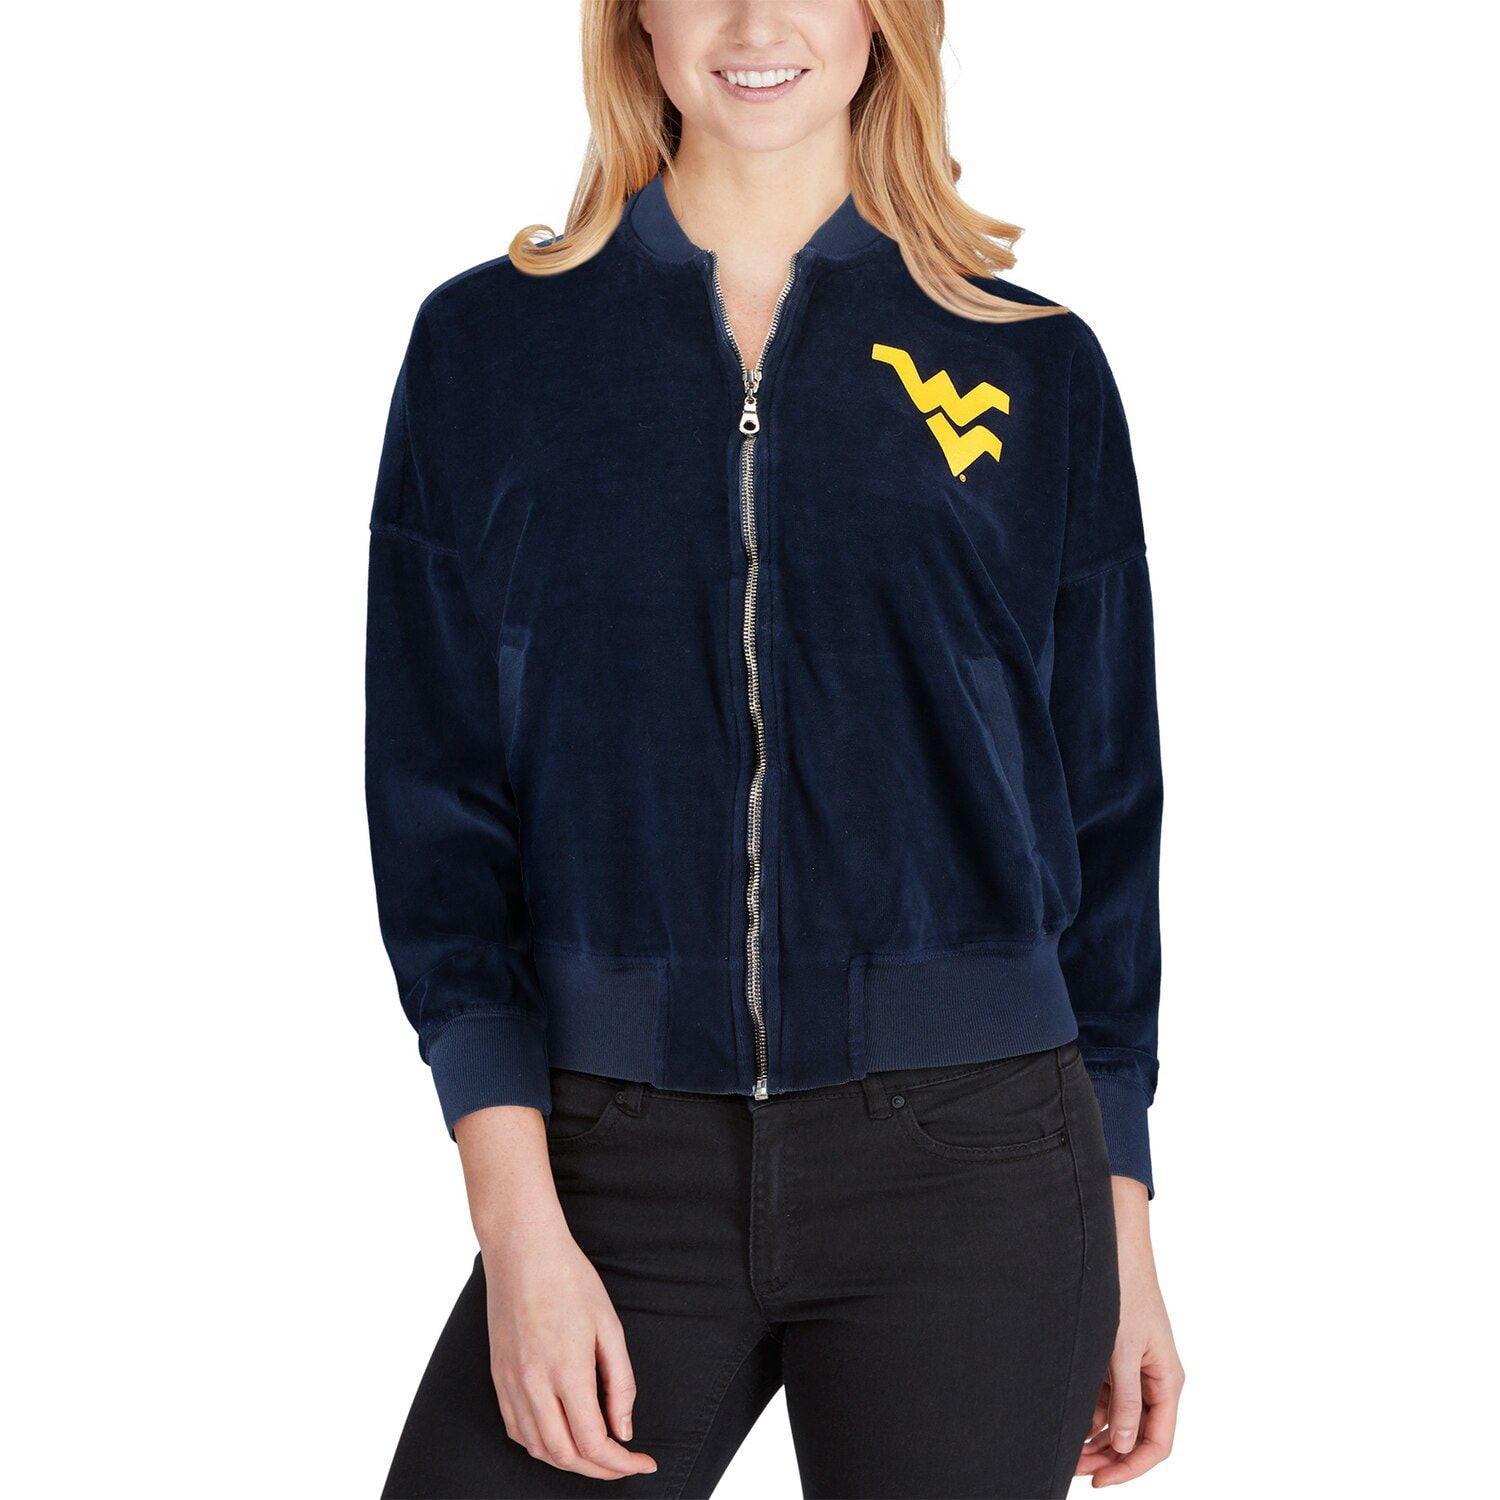 Women's Navy West Virginia Mountaineers Velour Bomber Jacket #westvirginia